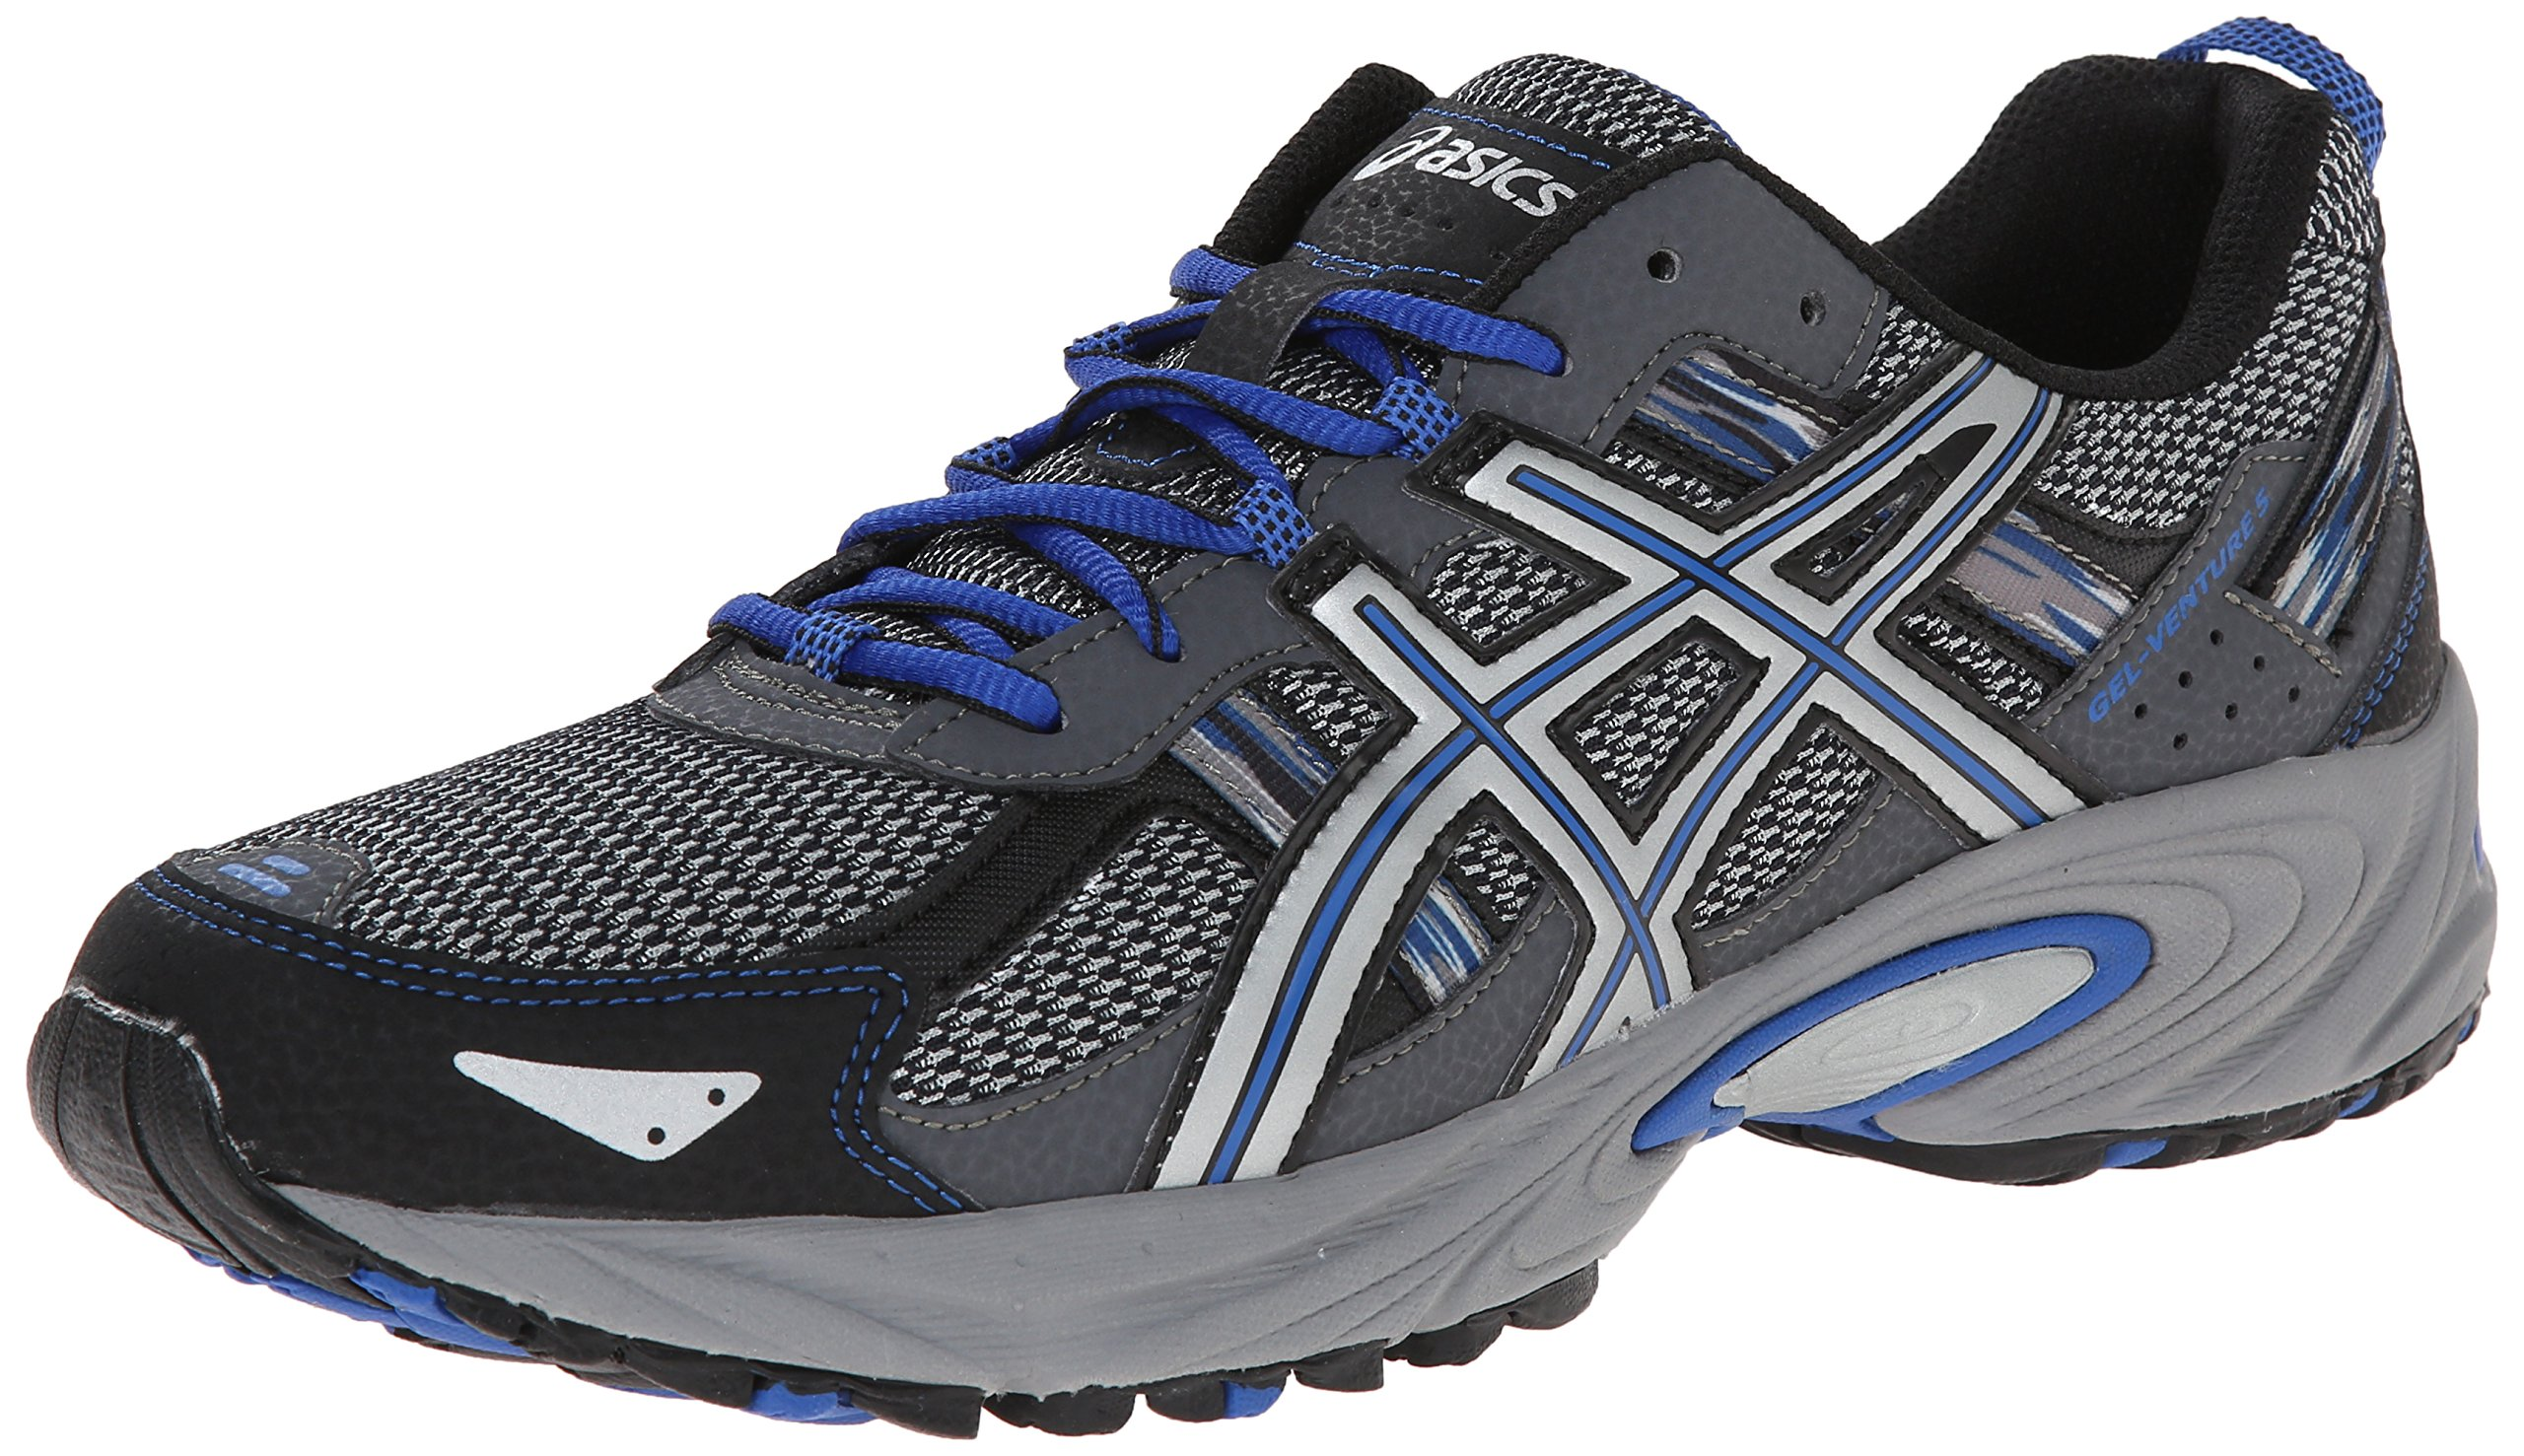 ASICS Men's Gel Venture 5 Running Shoe, Silver/Light Grey/Royal, 10.5 M US by ASICS